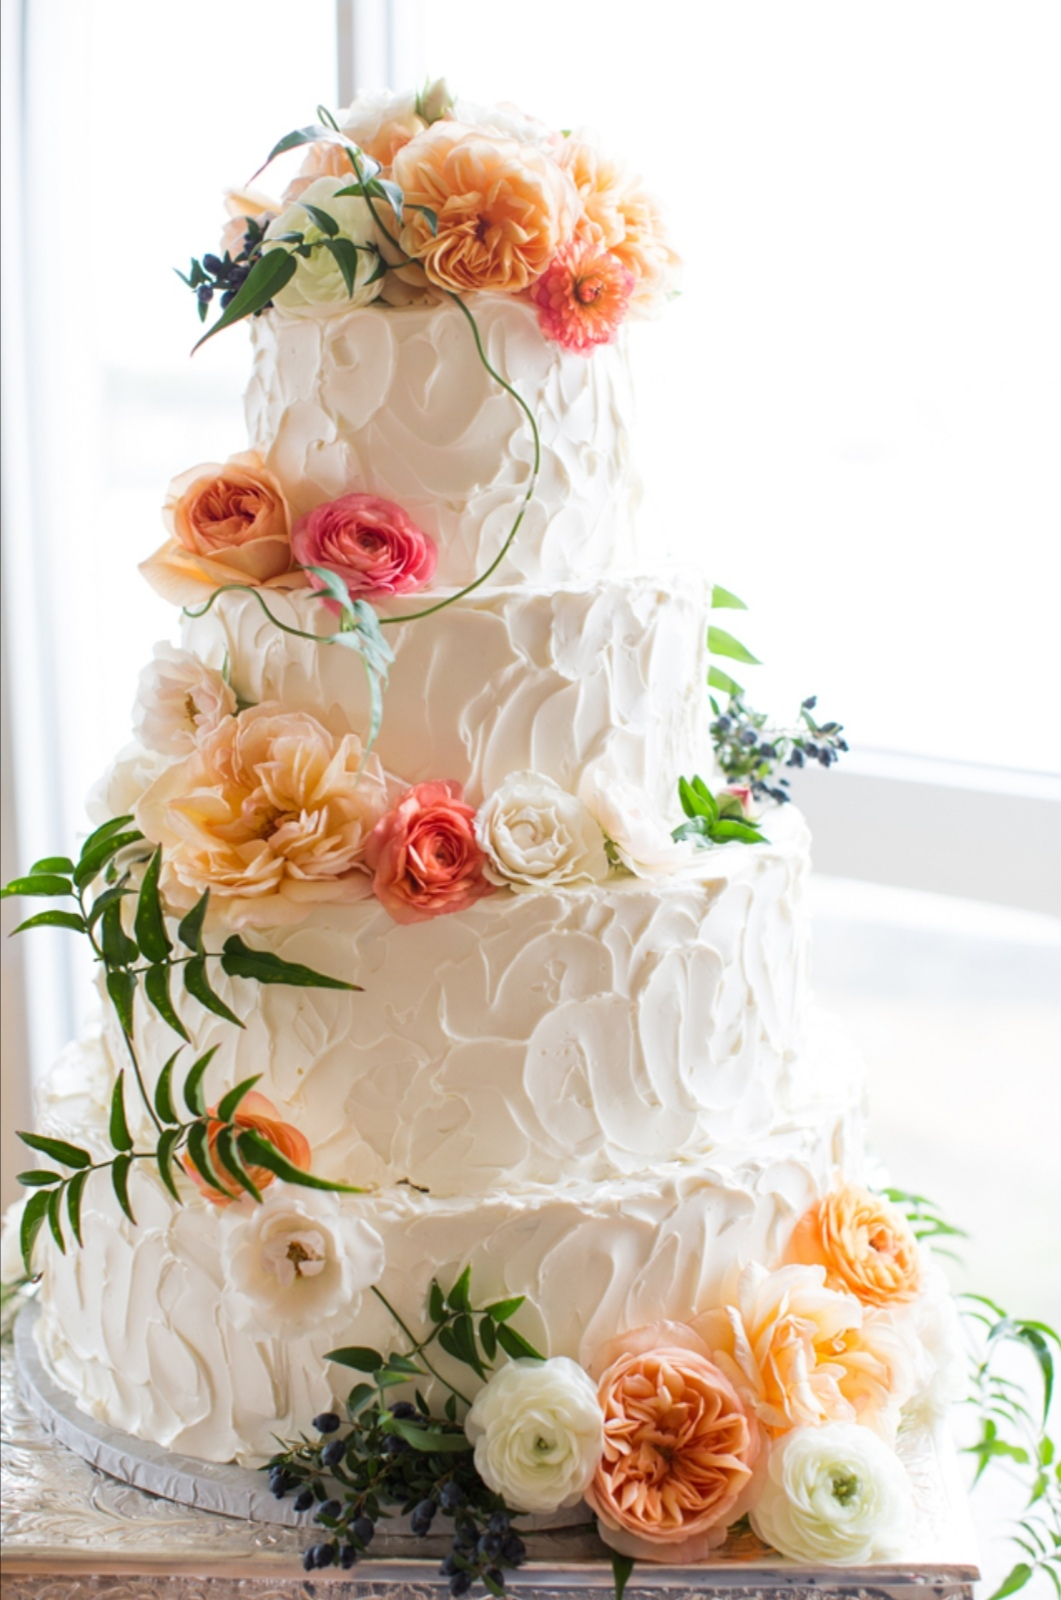 Autumn inspired wedding cakes